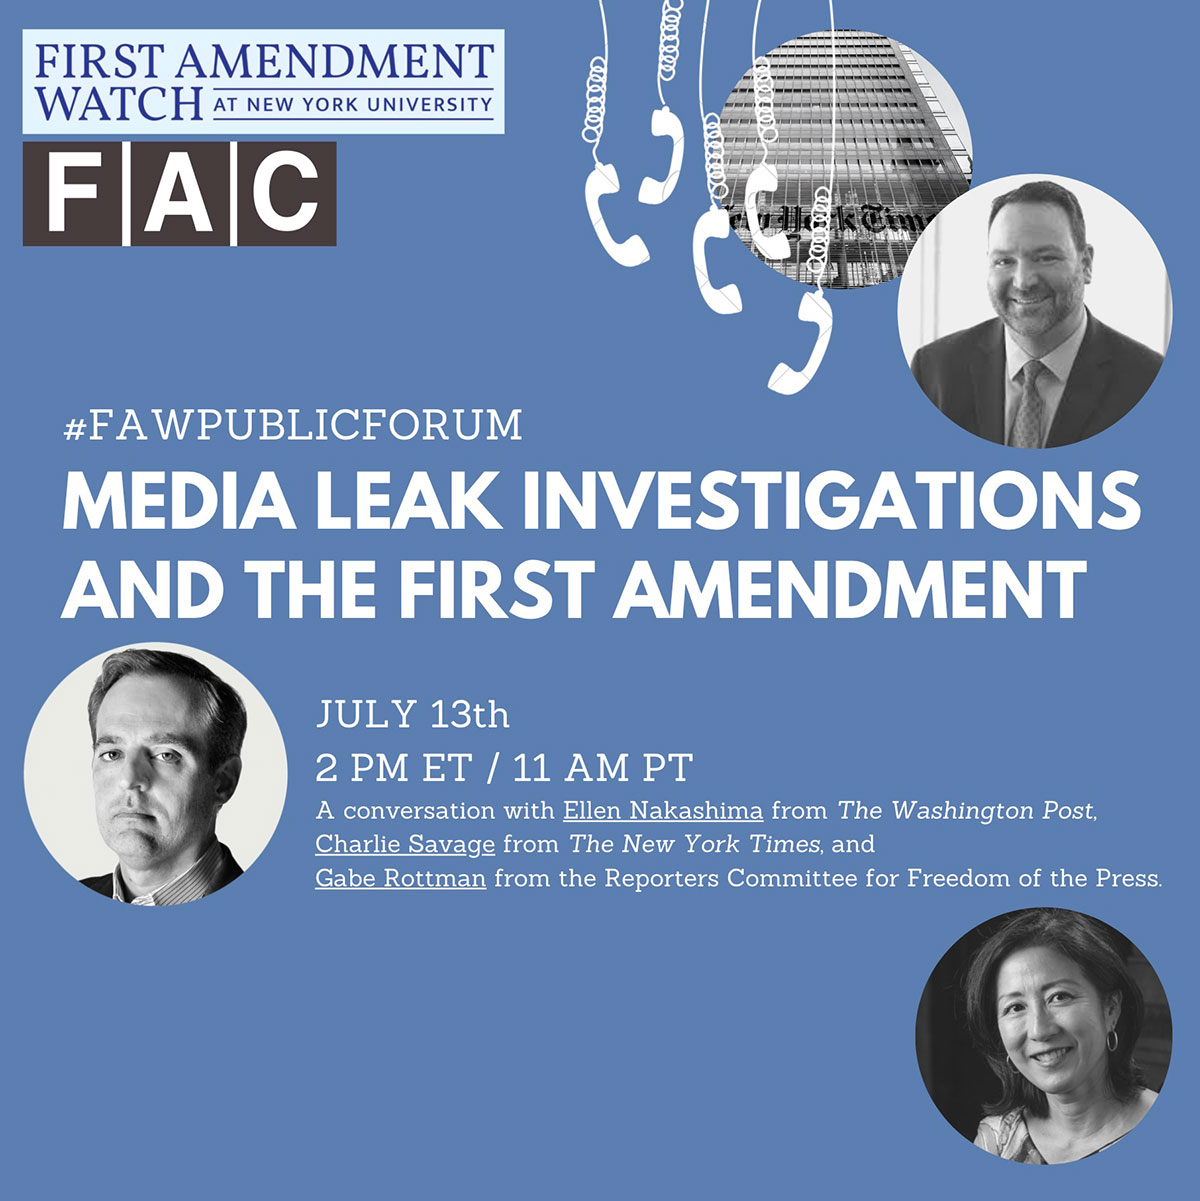 Media Leak Investigations and the First Amendment - Event Poster 2021 Fall - July 13 2pm ET - See event page for details